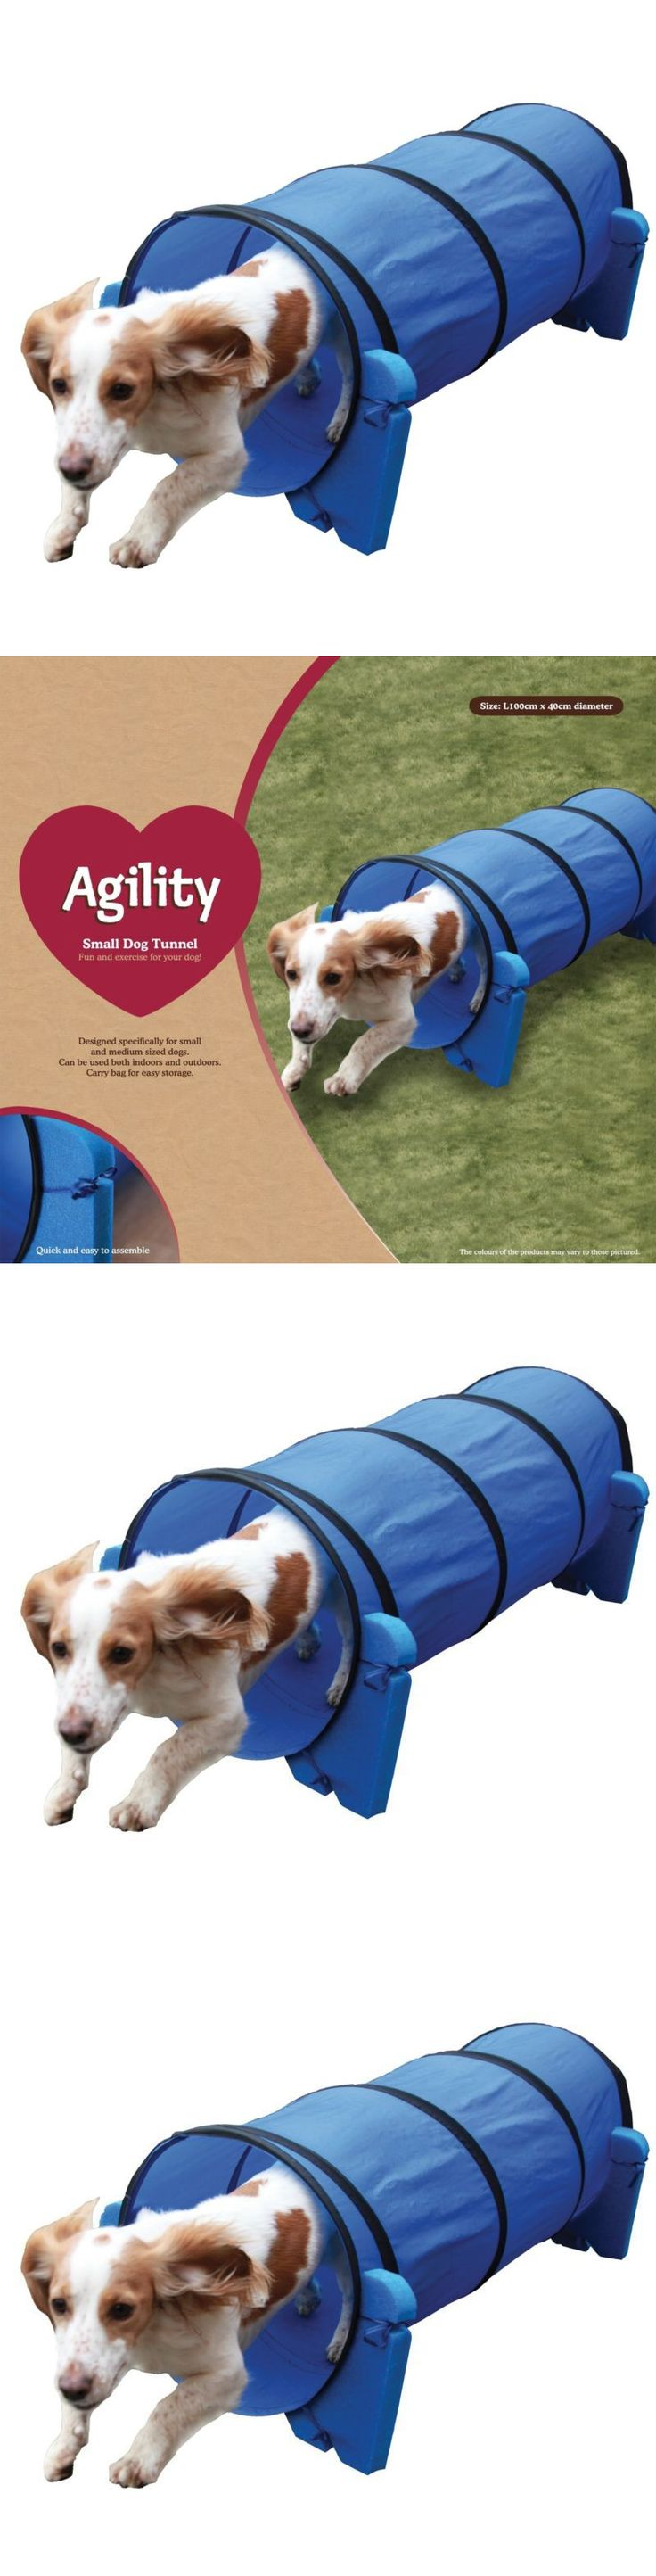 Agility Training 116383: Dog Agility Tunnel Training Outdoor Pet Runner Equipment Exercise Puppy Open New -> BUY IT NOW ONLY: $36.4 on eBay!